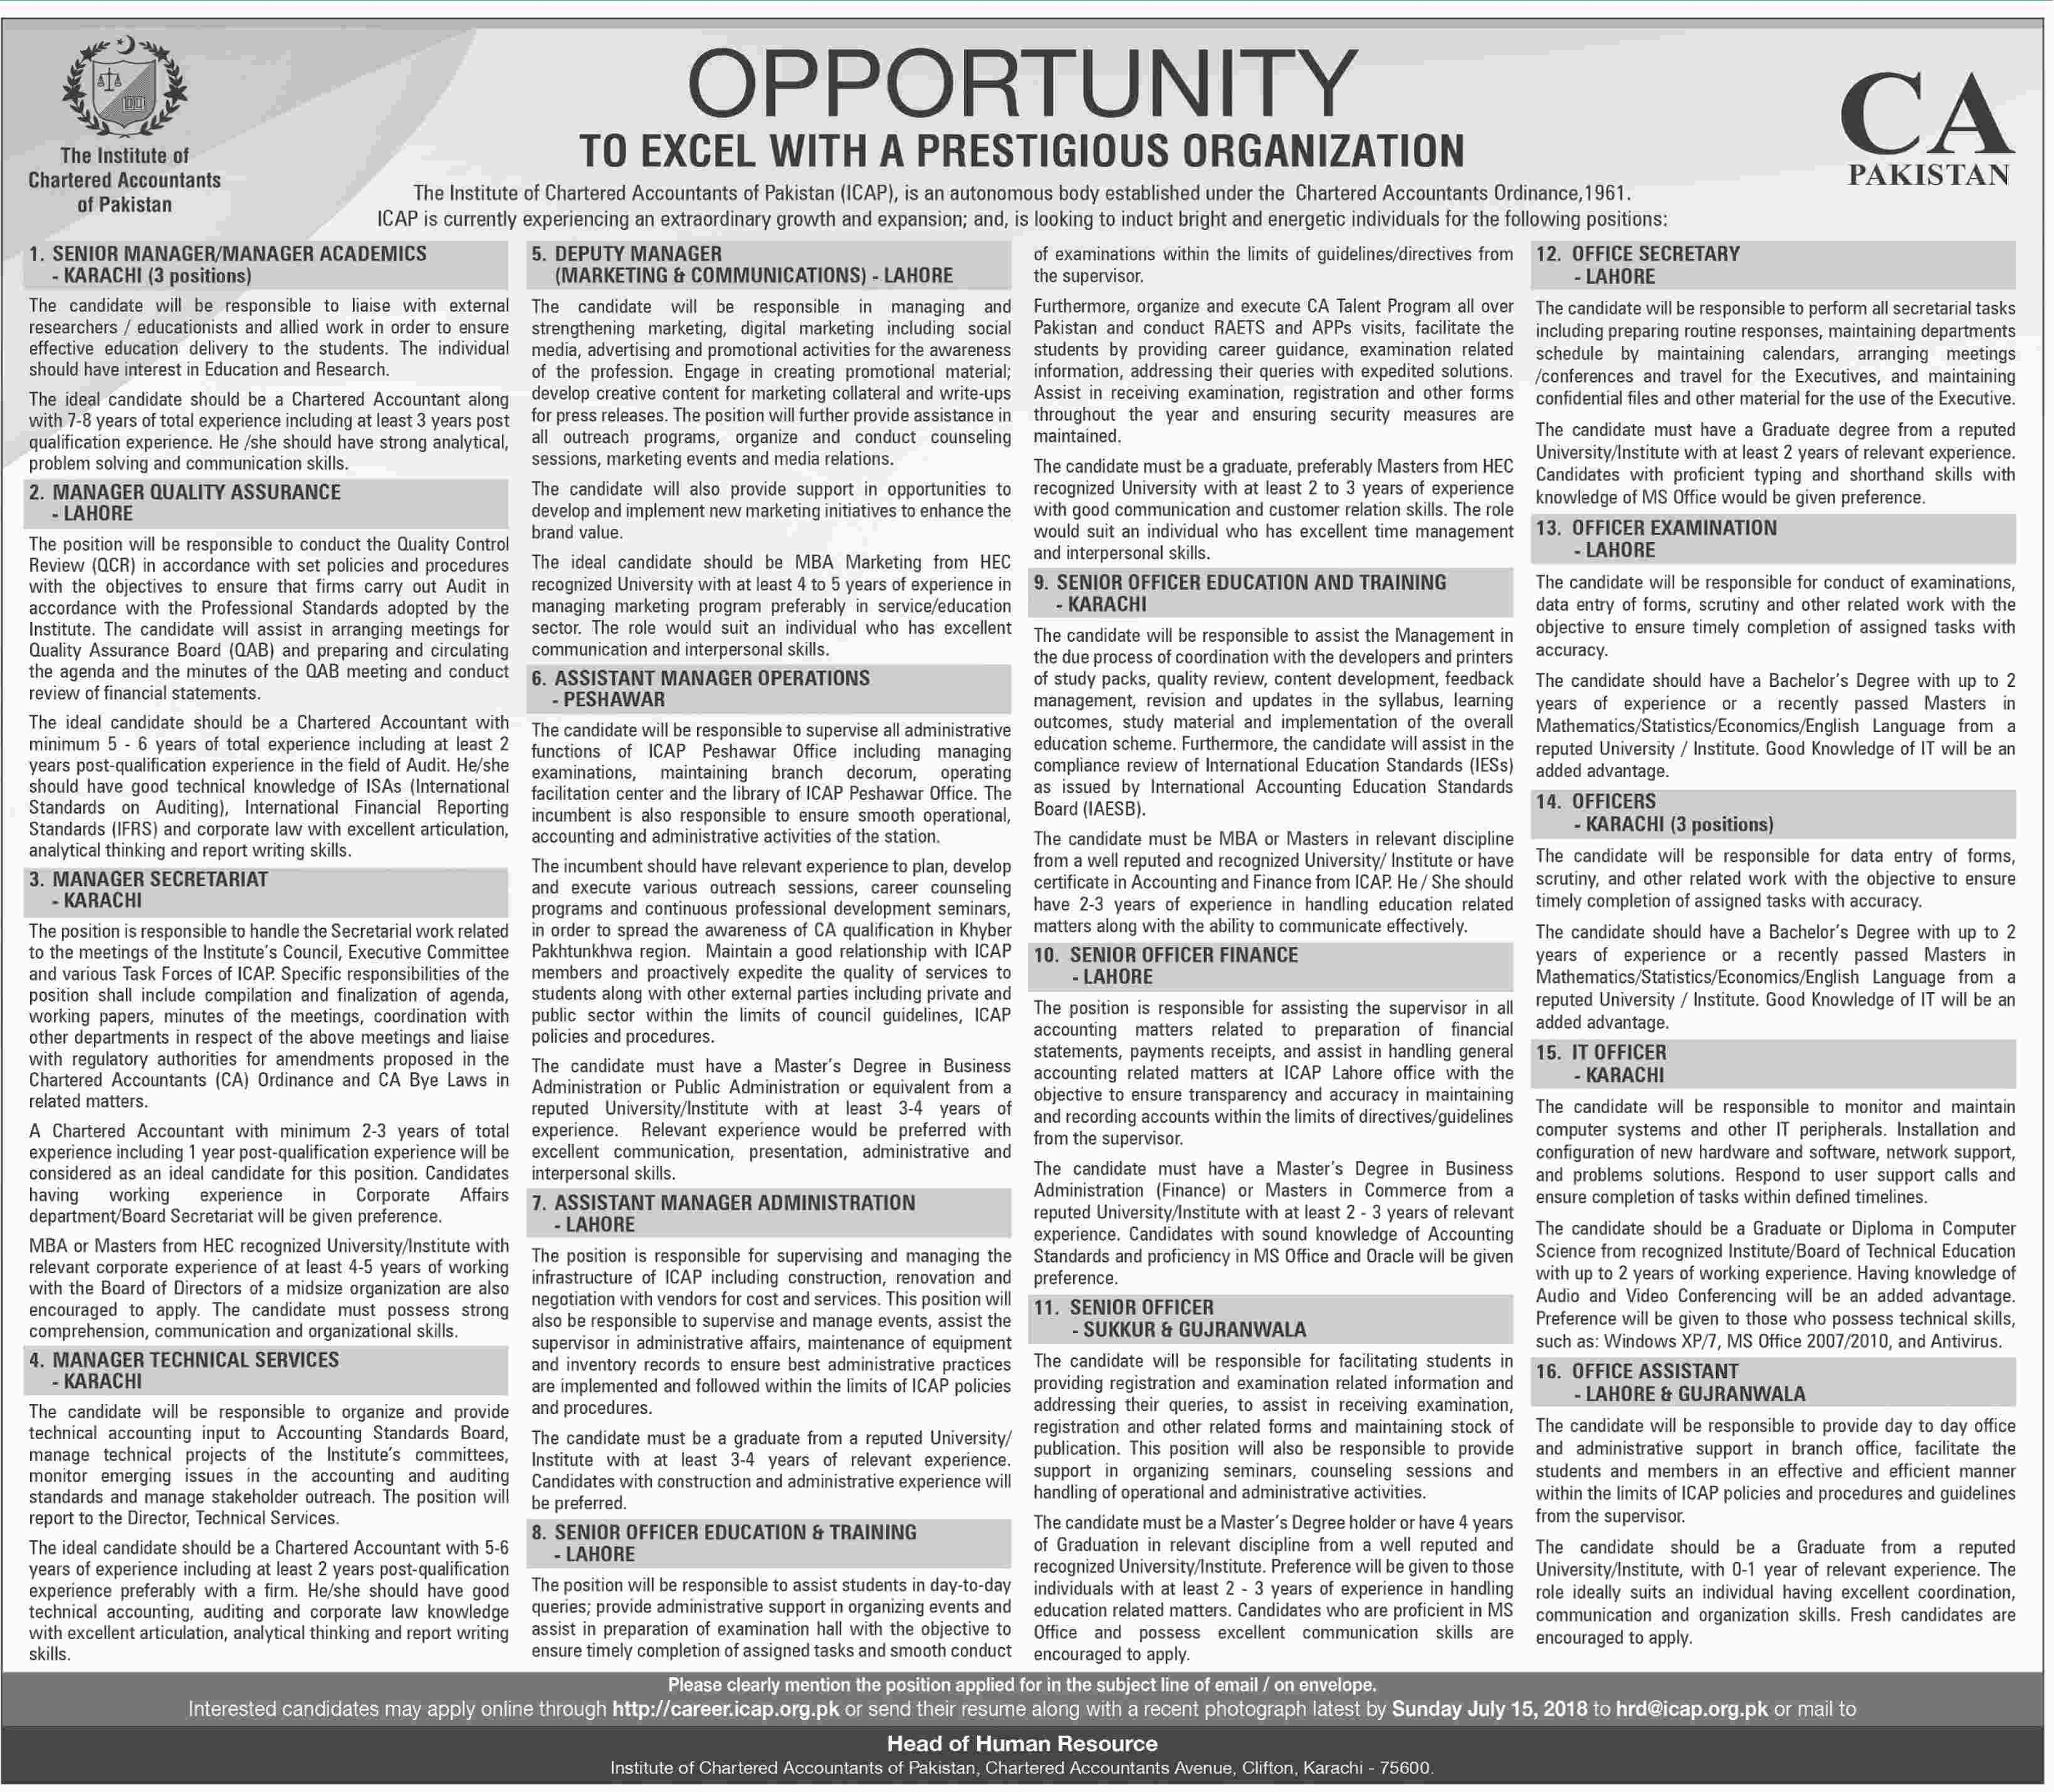 Jobs in Institute of Chartered Accountants of Pakistan 01 July 2018